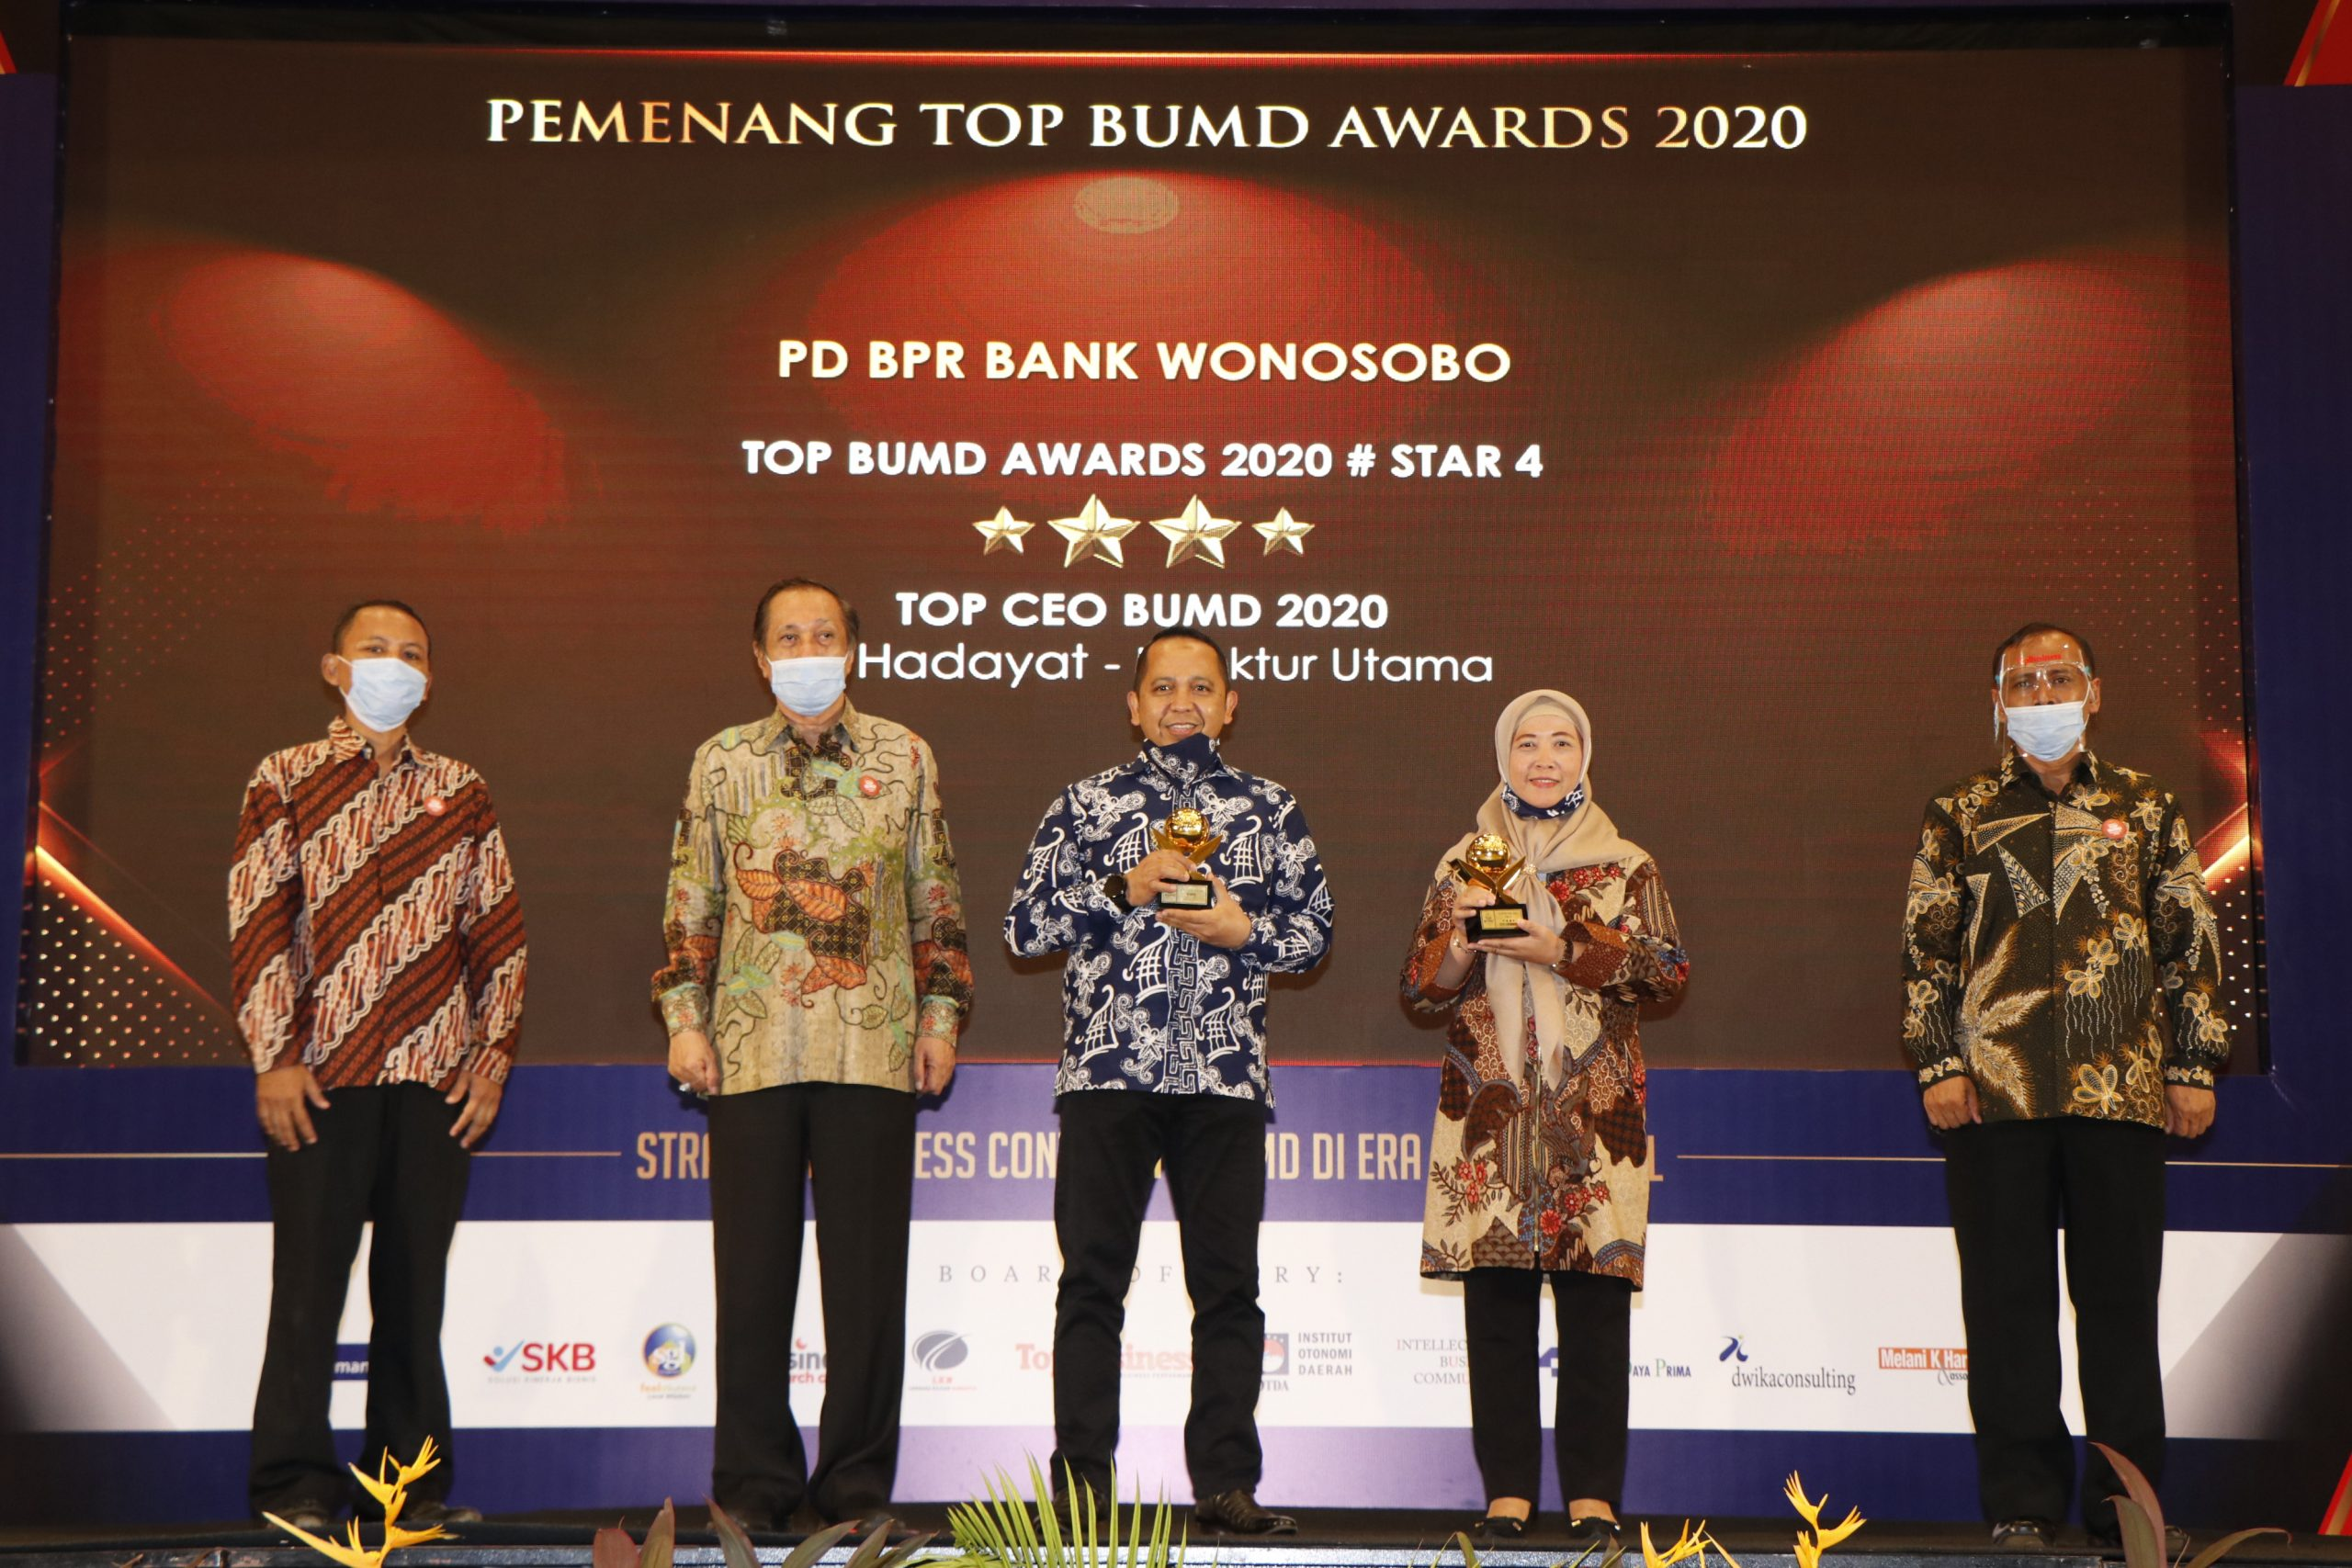 PT BPR Bank Wonosobo raih Prestasi TOP BUMD Award 2020